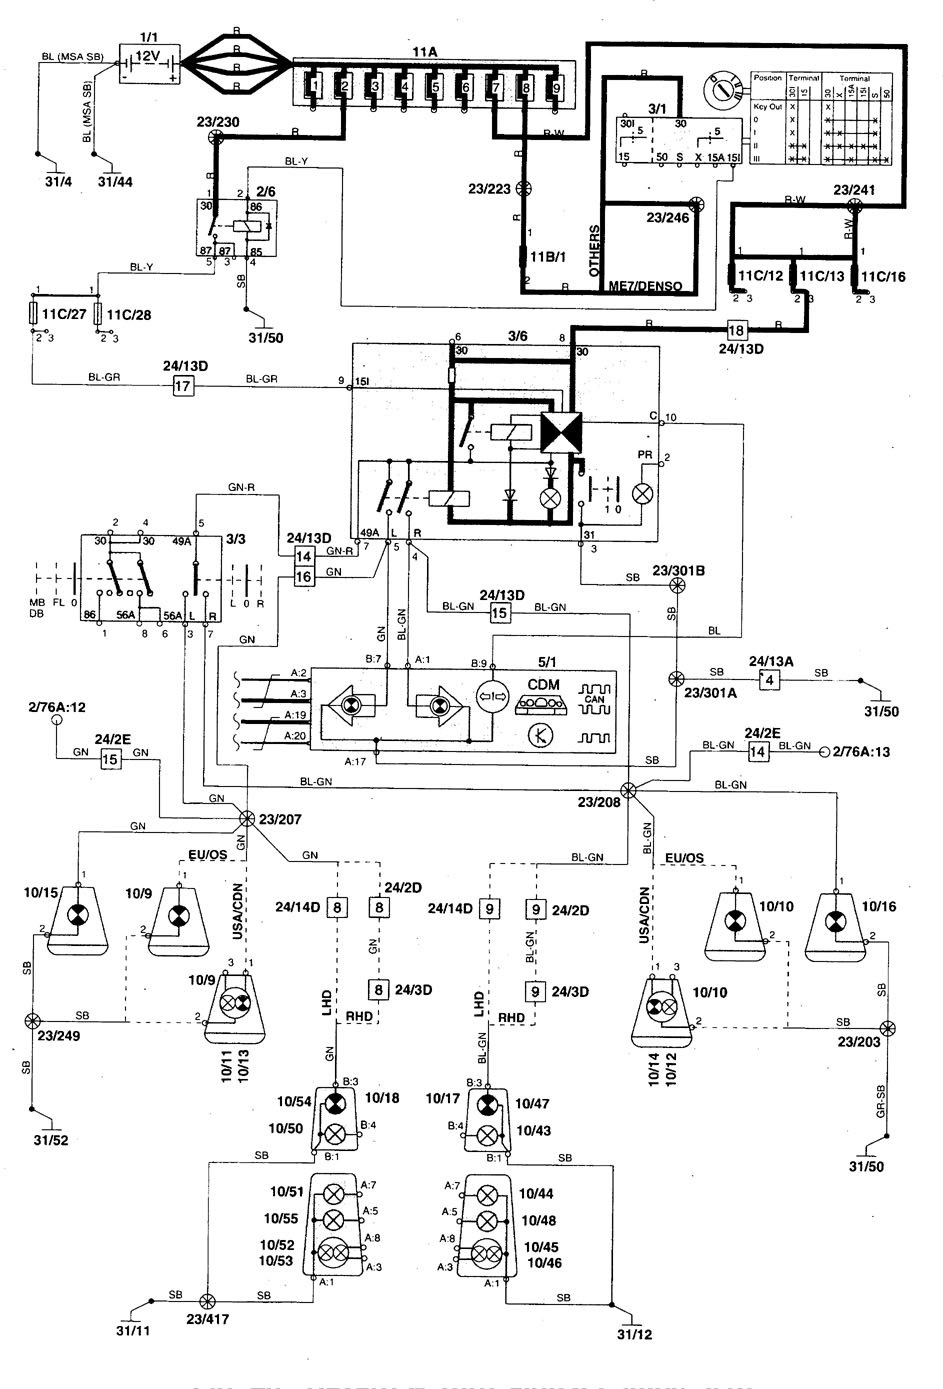 Wiring Diagram Volvo V70 1998 Reveolution Of Color Codes Simple Guide About U2022 Rh Bluecrm Co